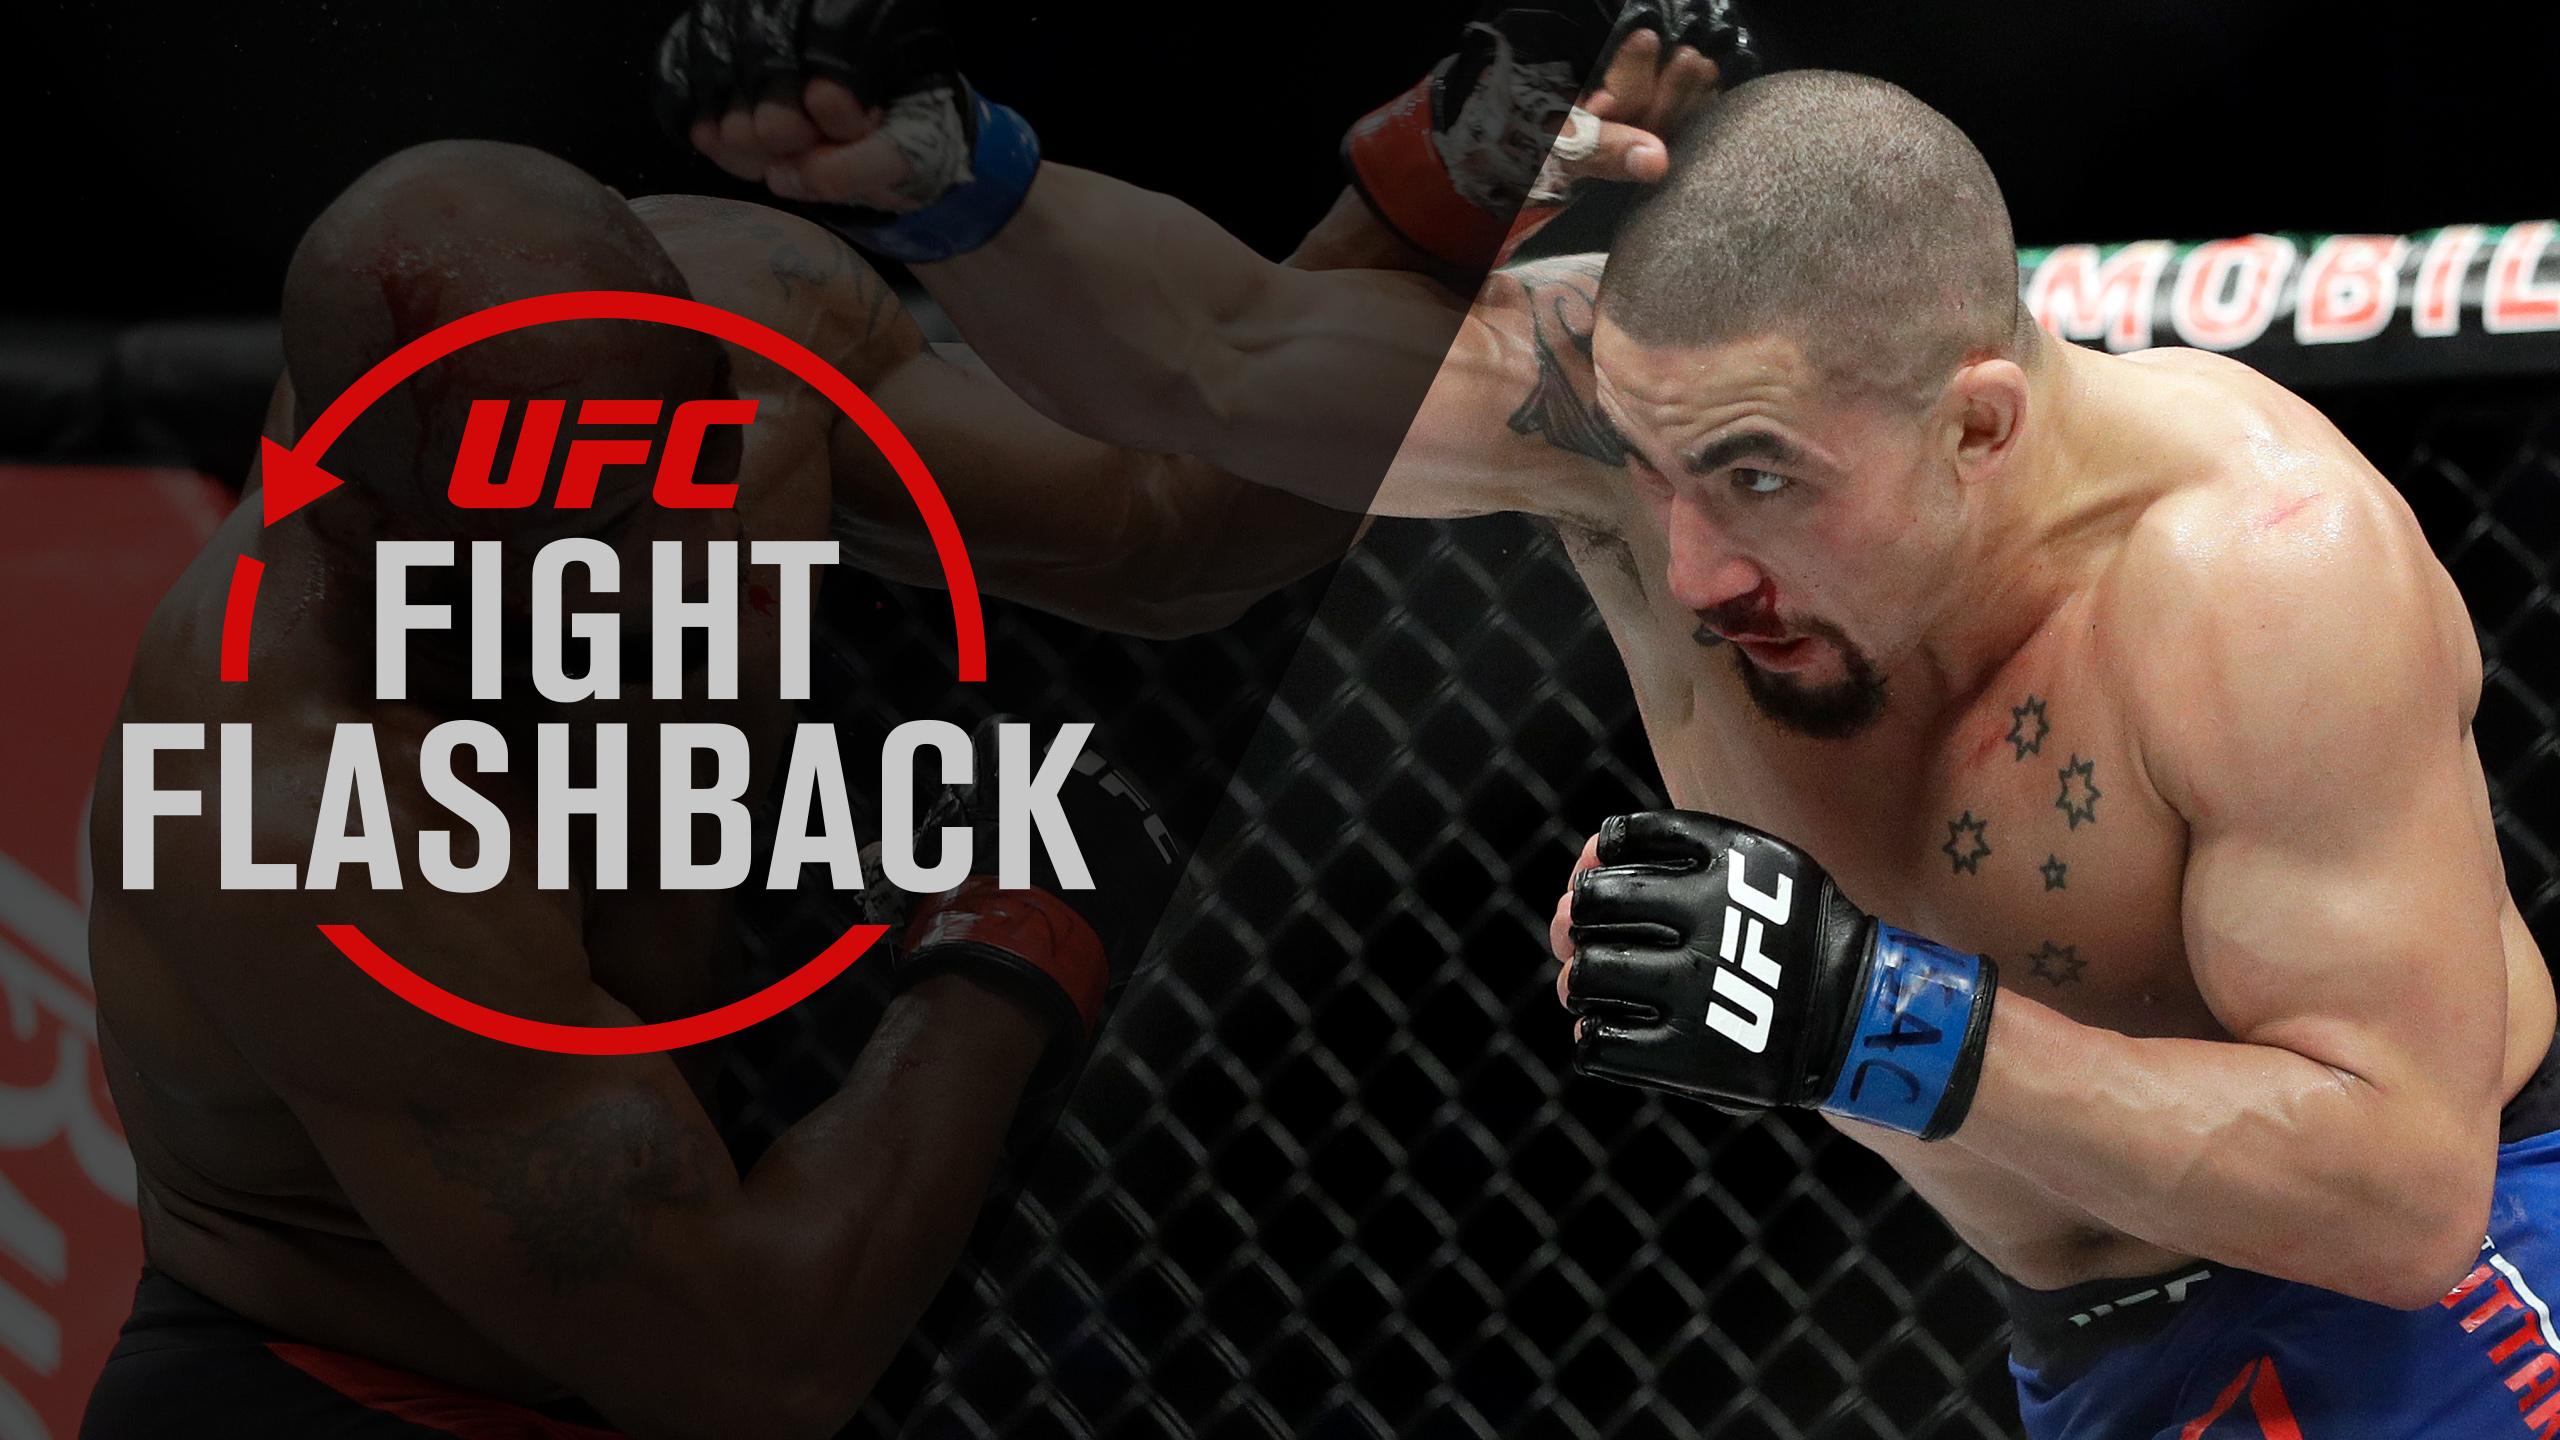 UFC Fight Flashback: Romero vs. Whittaker